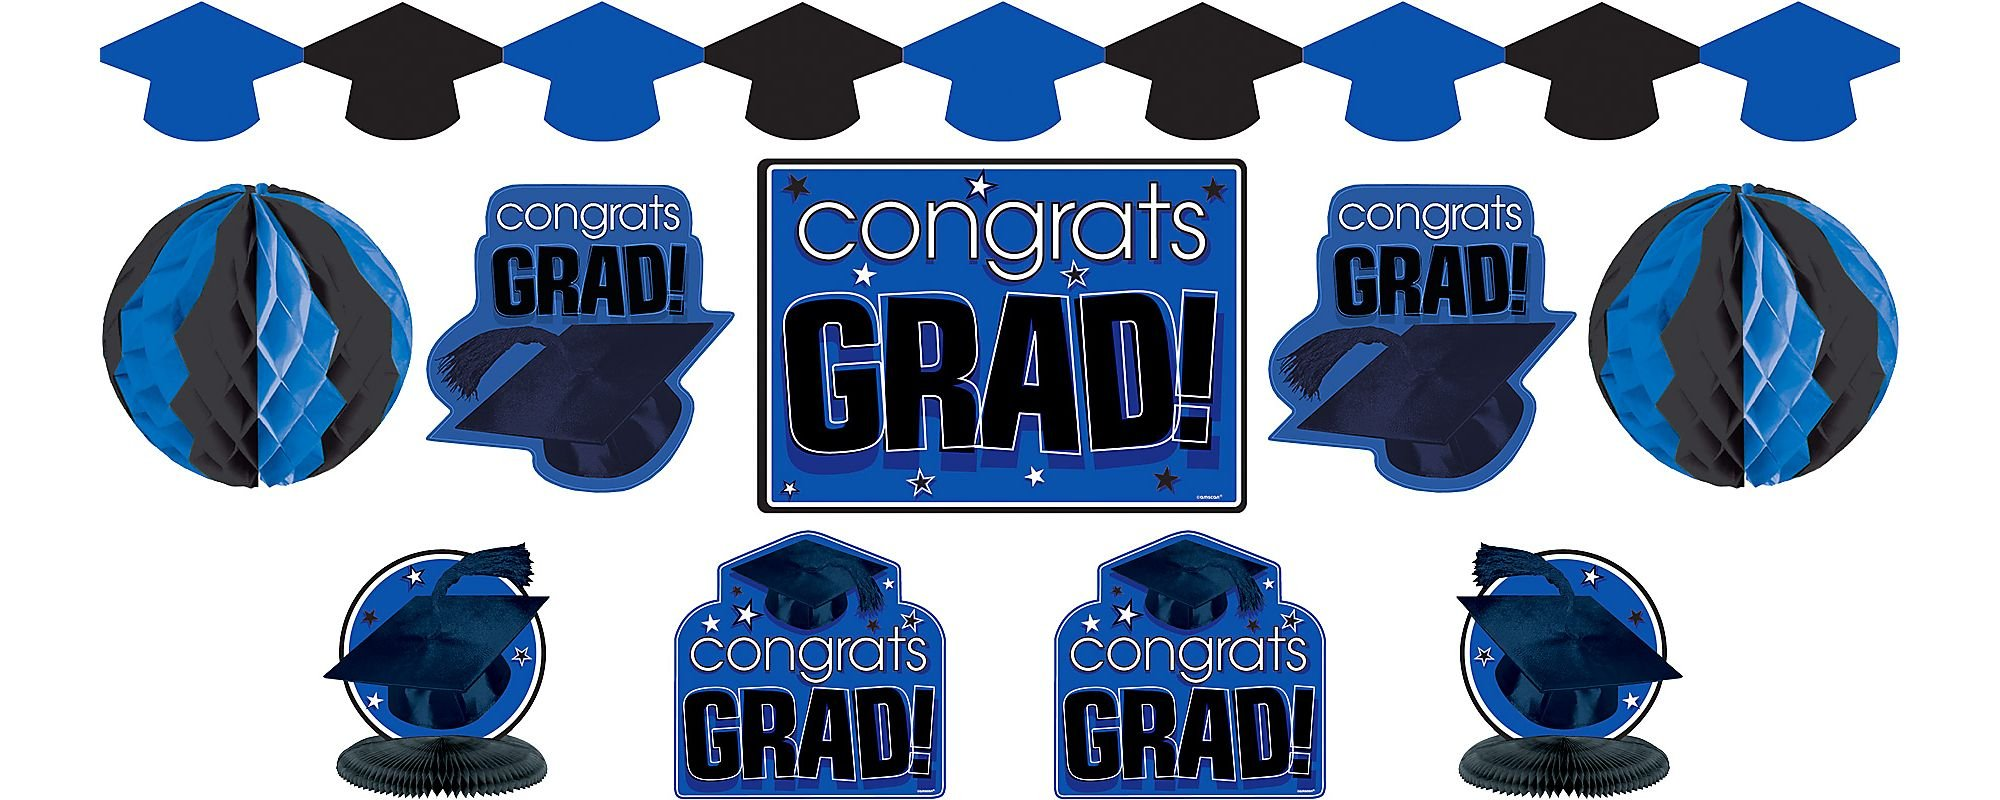 Amscan Congrats Grad! Graduation Party Room Decorating Kit (10 Piece), Royal Blue/Black, One Size